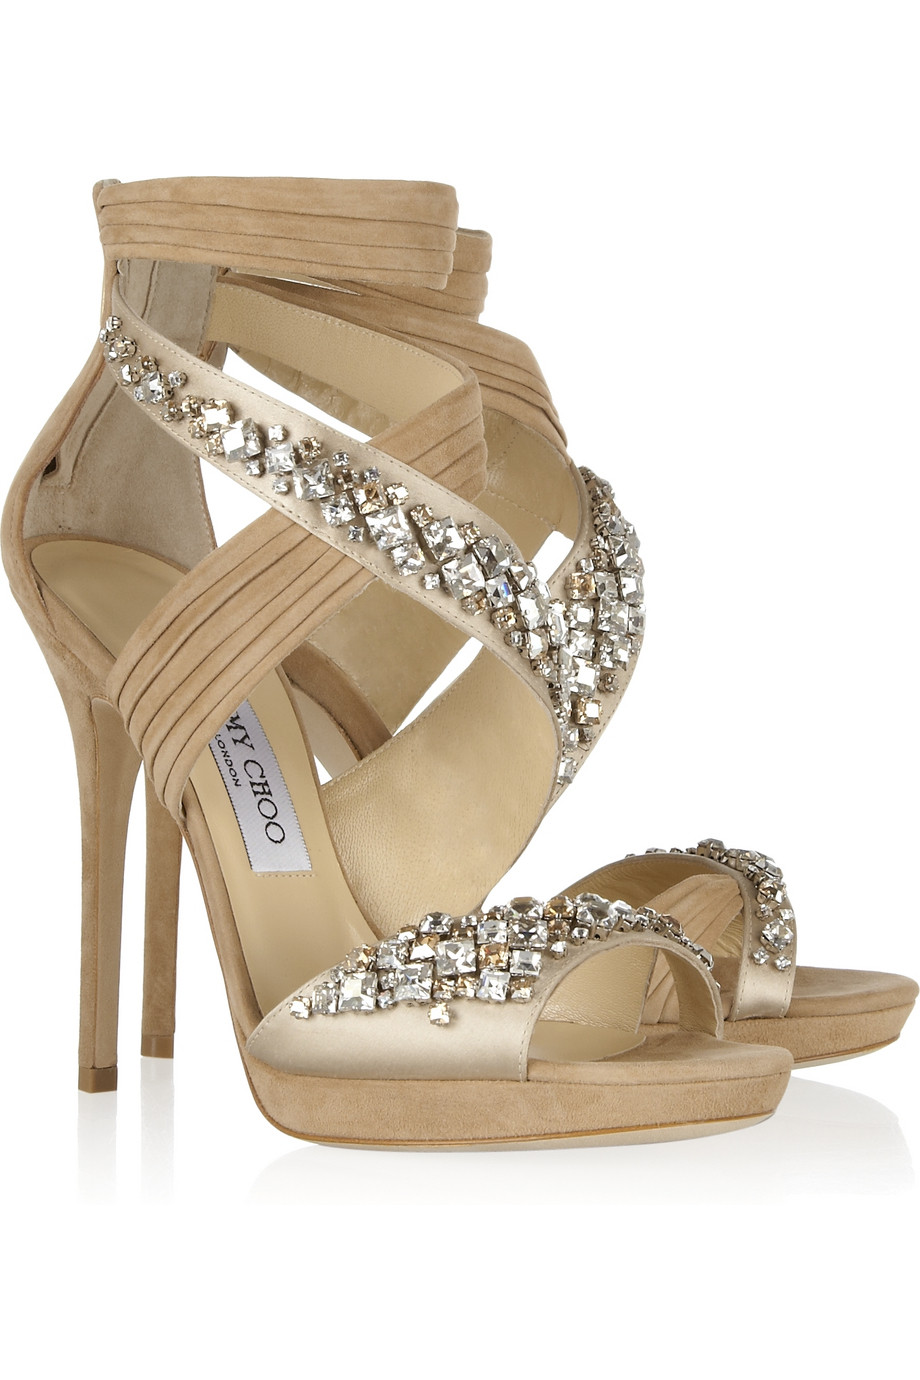 0e2b2de3e2082f Lyst - Jimmy Choo Kani Swarovski Crystalembellished Satin and Suede ...